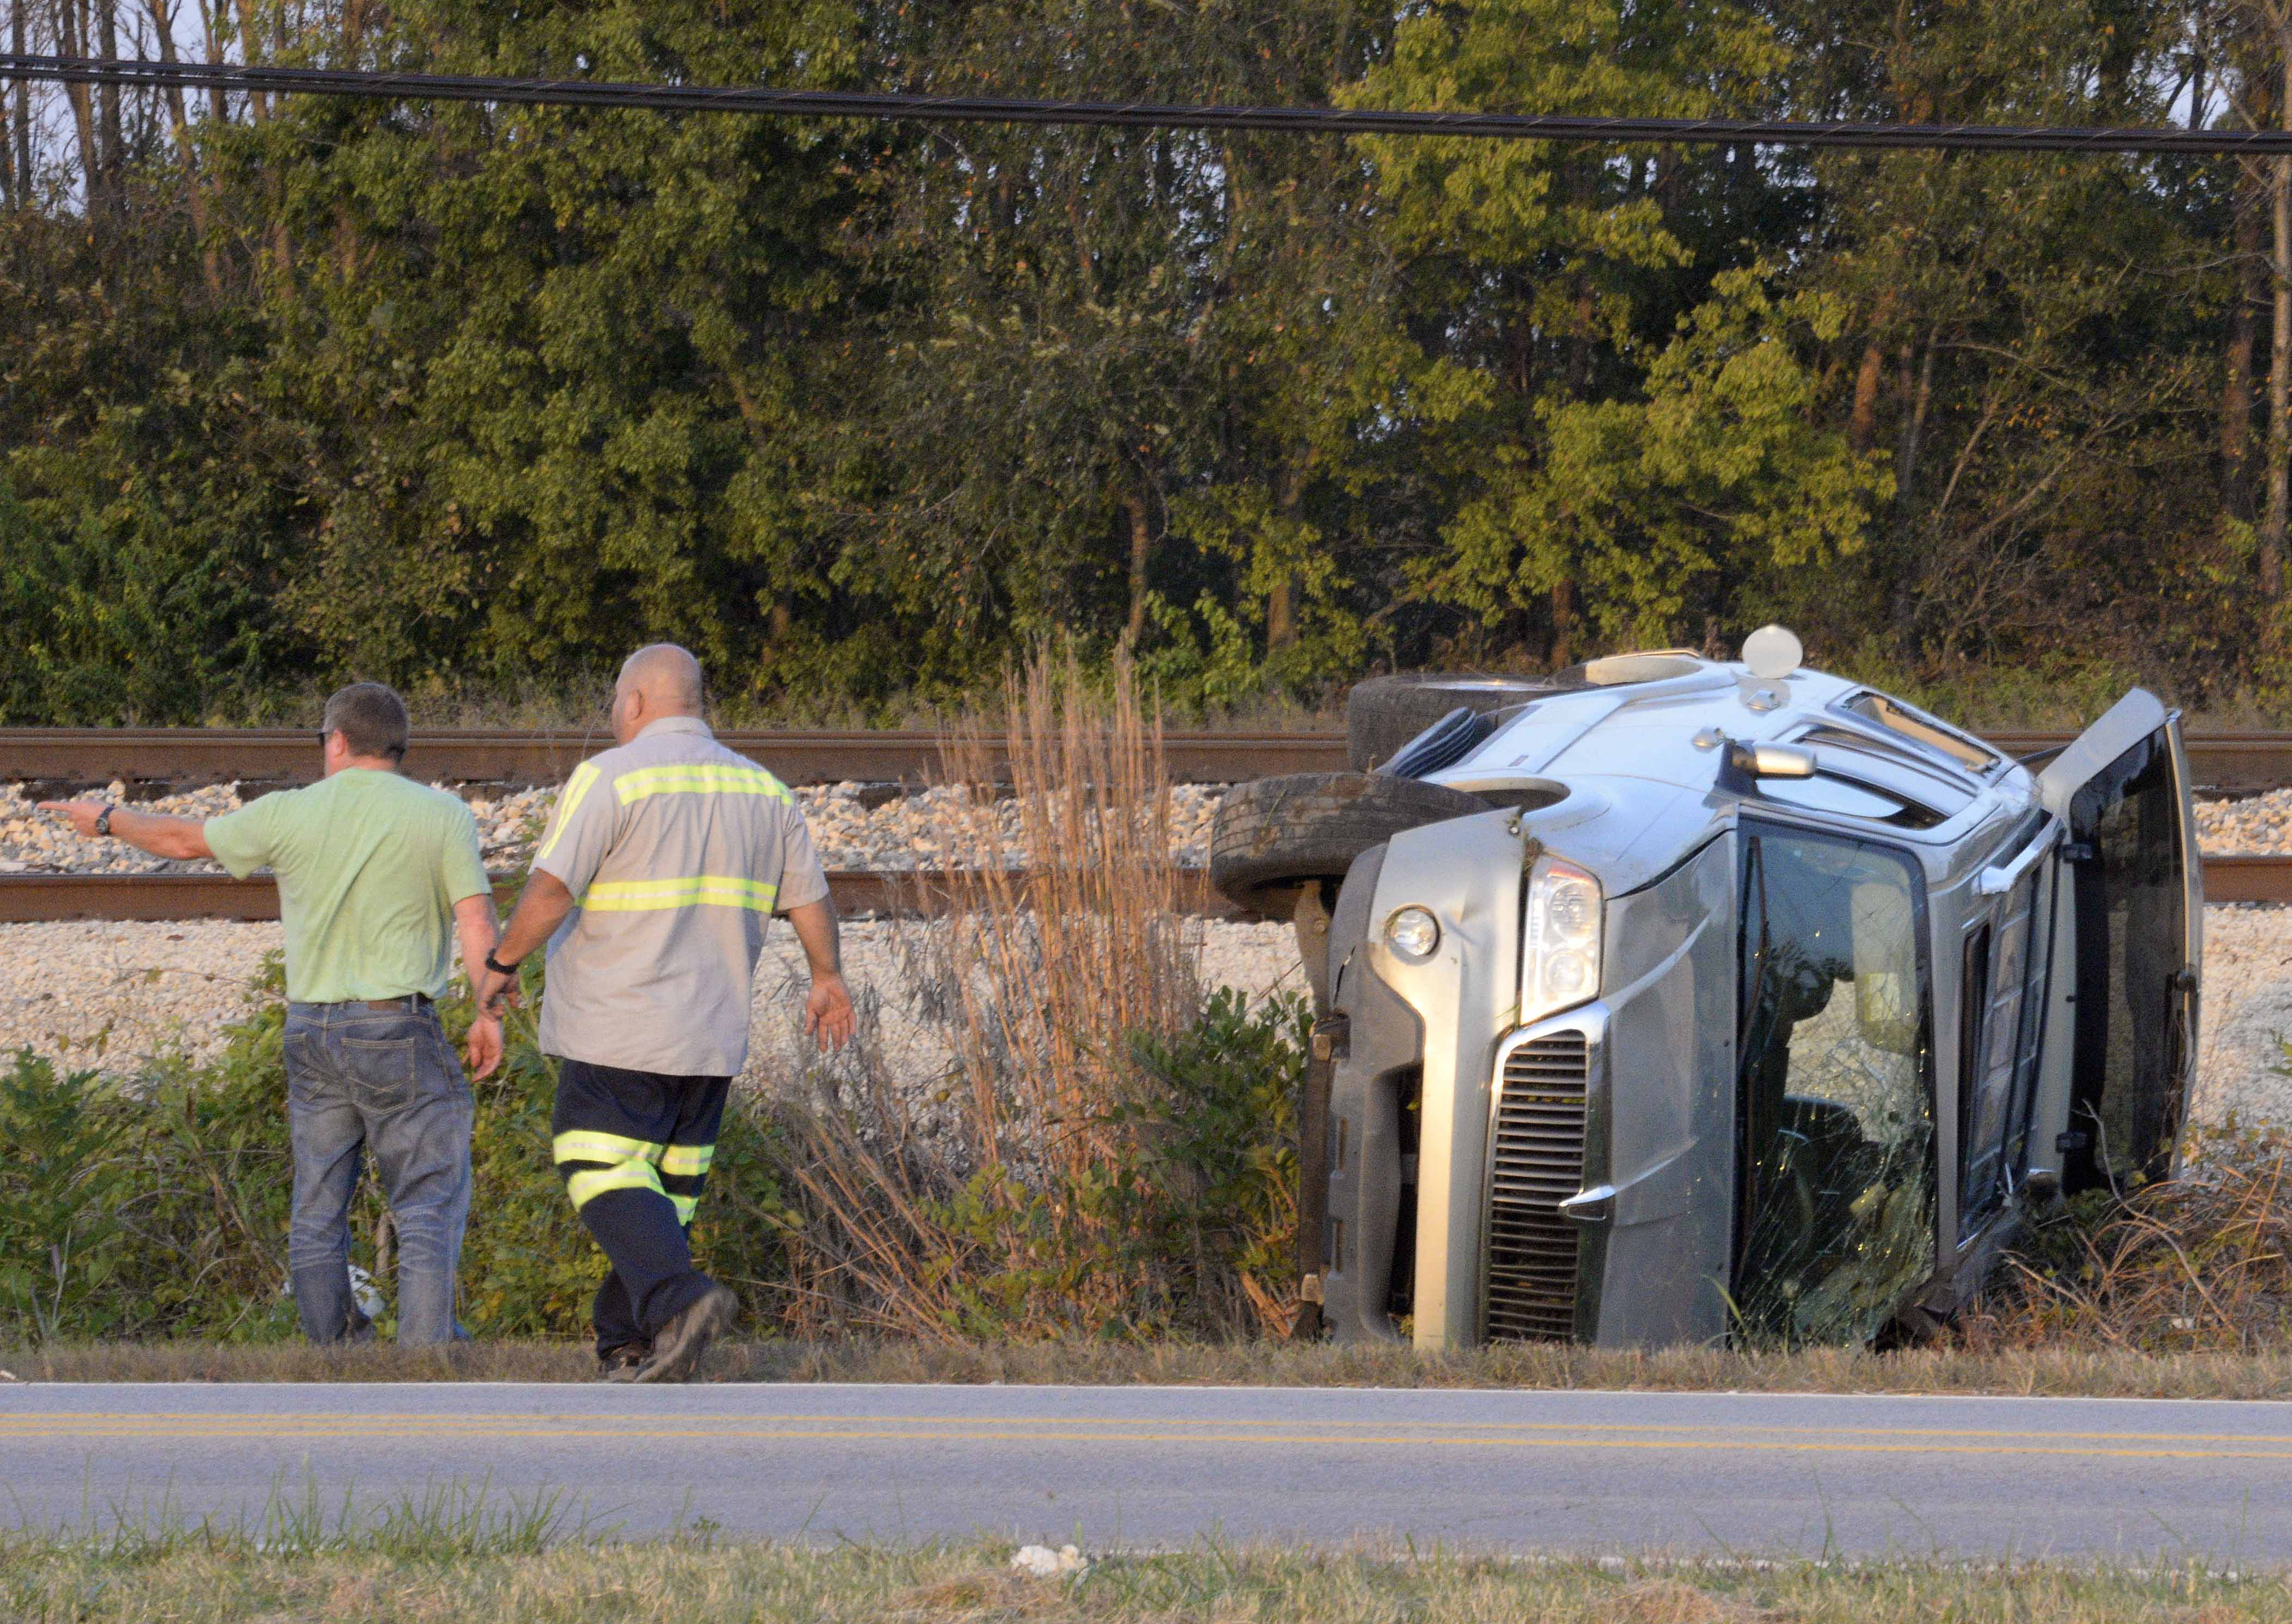 A tow crew responds to a flipped SUV on Sunday, Oct. 16, 2016, in the 1500 block of North Illinois Avenue in Carbondale. (Bill Lukitsch | @lukitsbill)